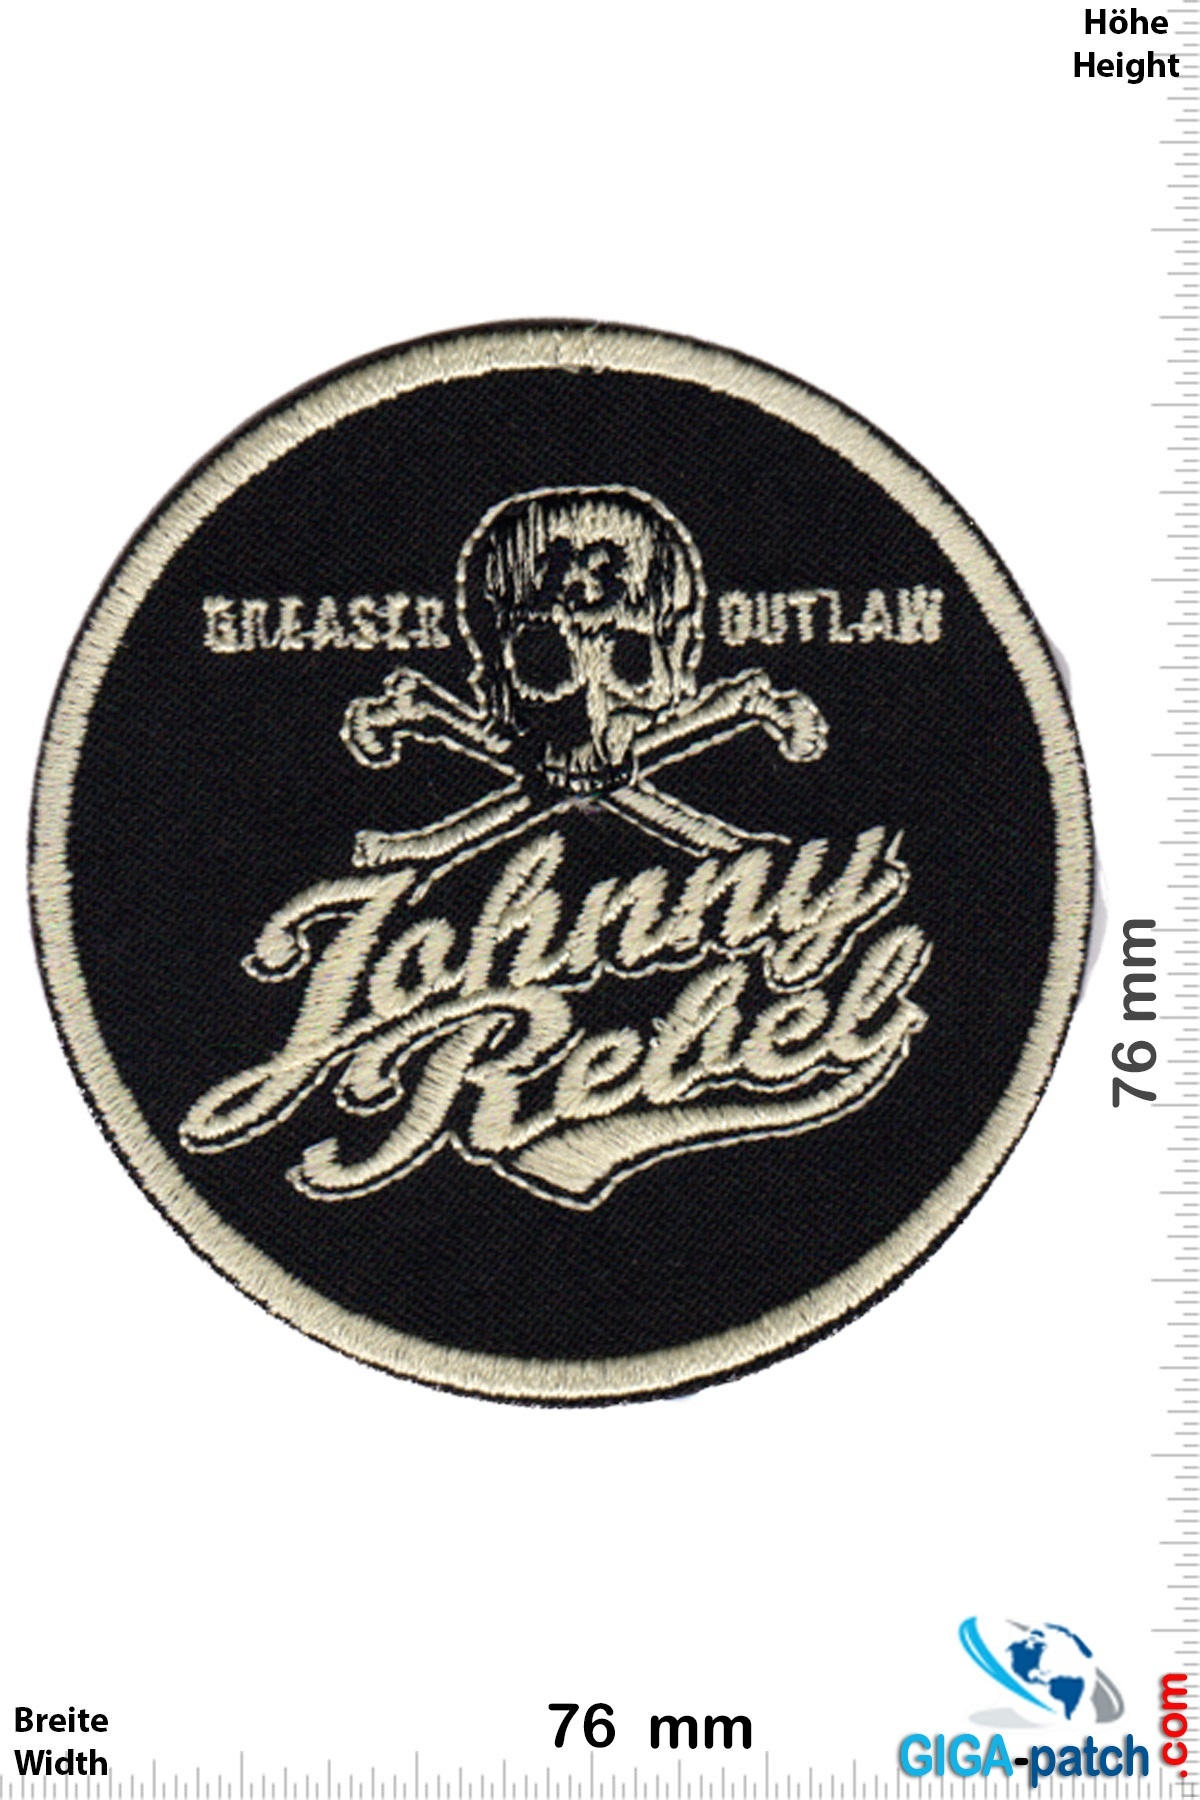 Hotrod Johnny Rebel - Greaser Outlaw - Lucky 13